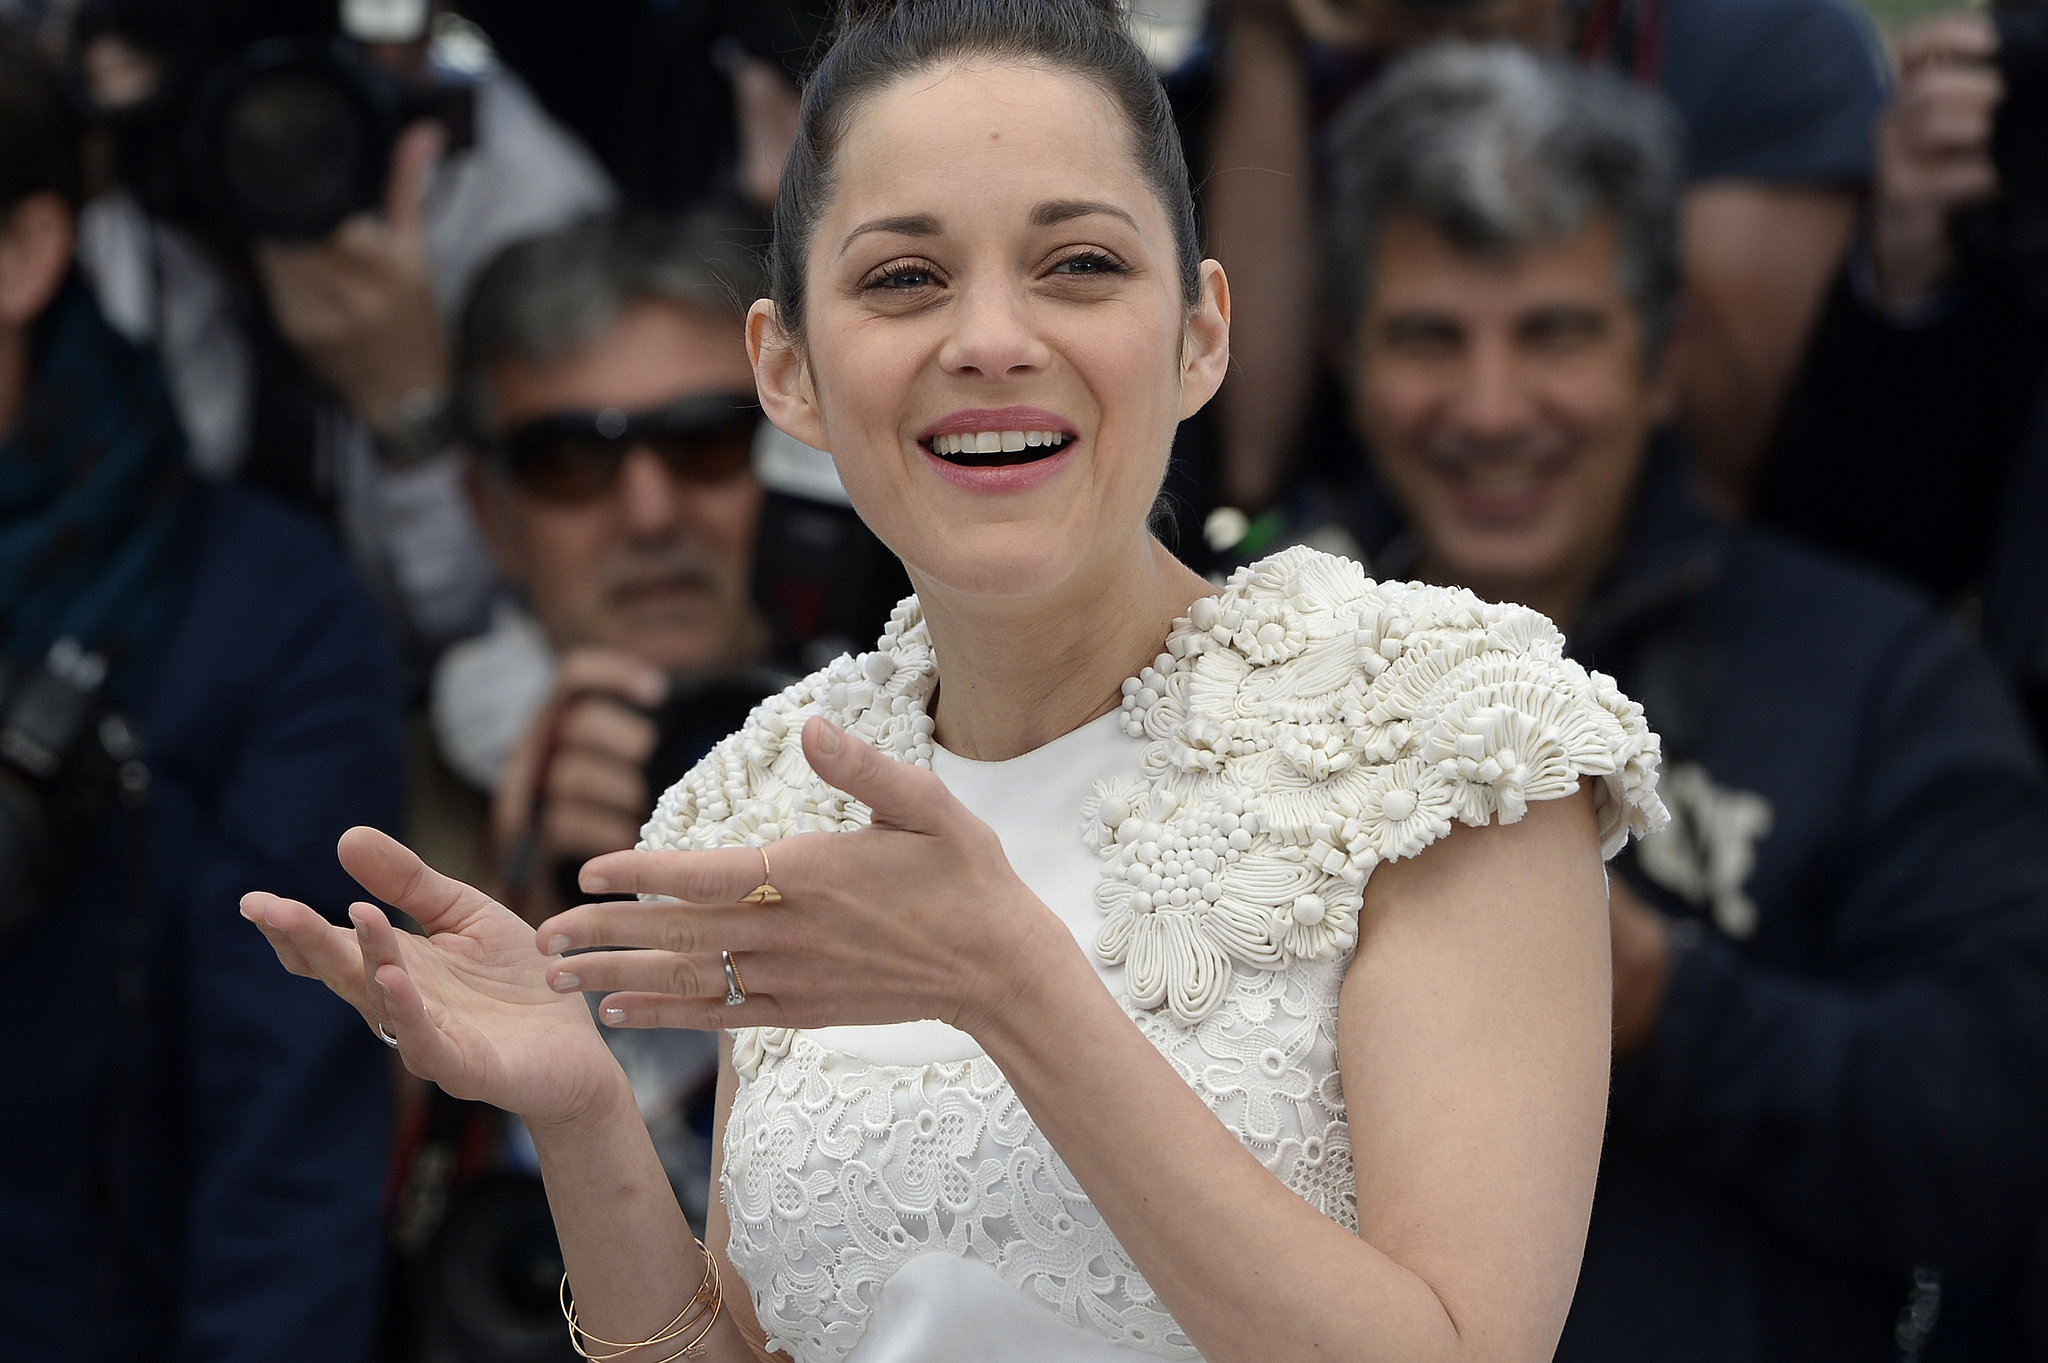 Marion Cotillard could barely keep her eyes open at the photocall for The Immigrant on Friday.